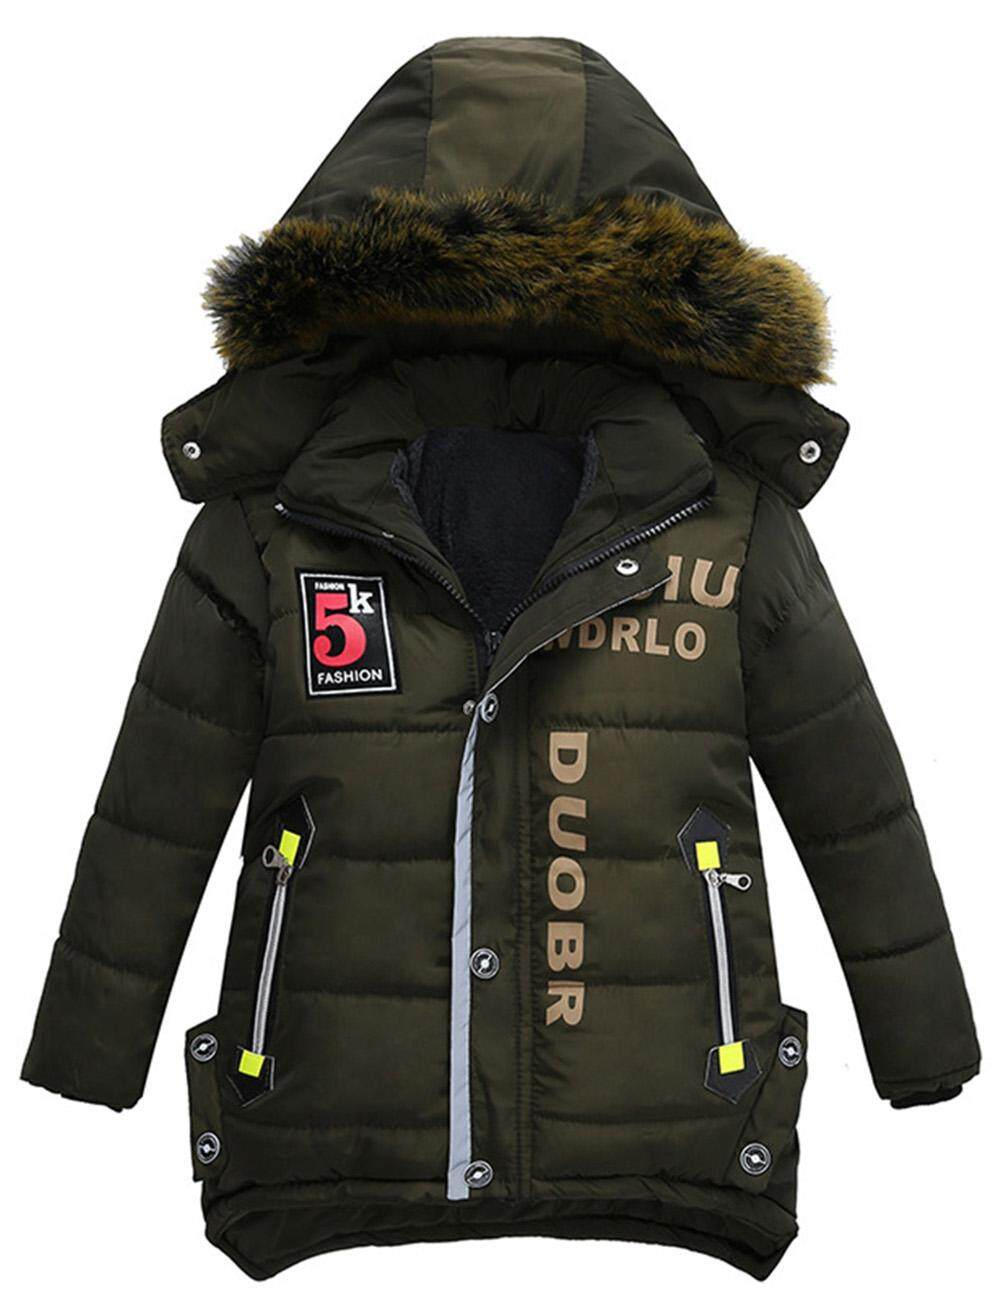 2d0f4cbb8 Boy s Jackets   Coats - Buy Boy s Jackets   Coats at Best Price in ...